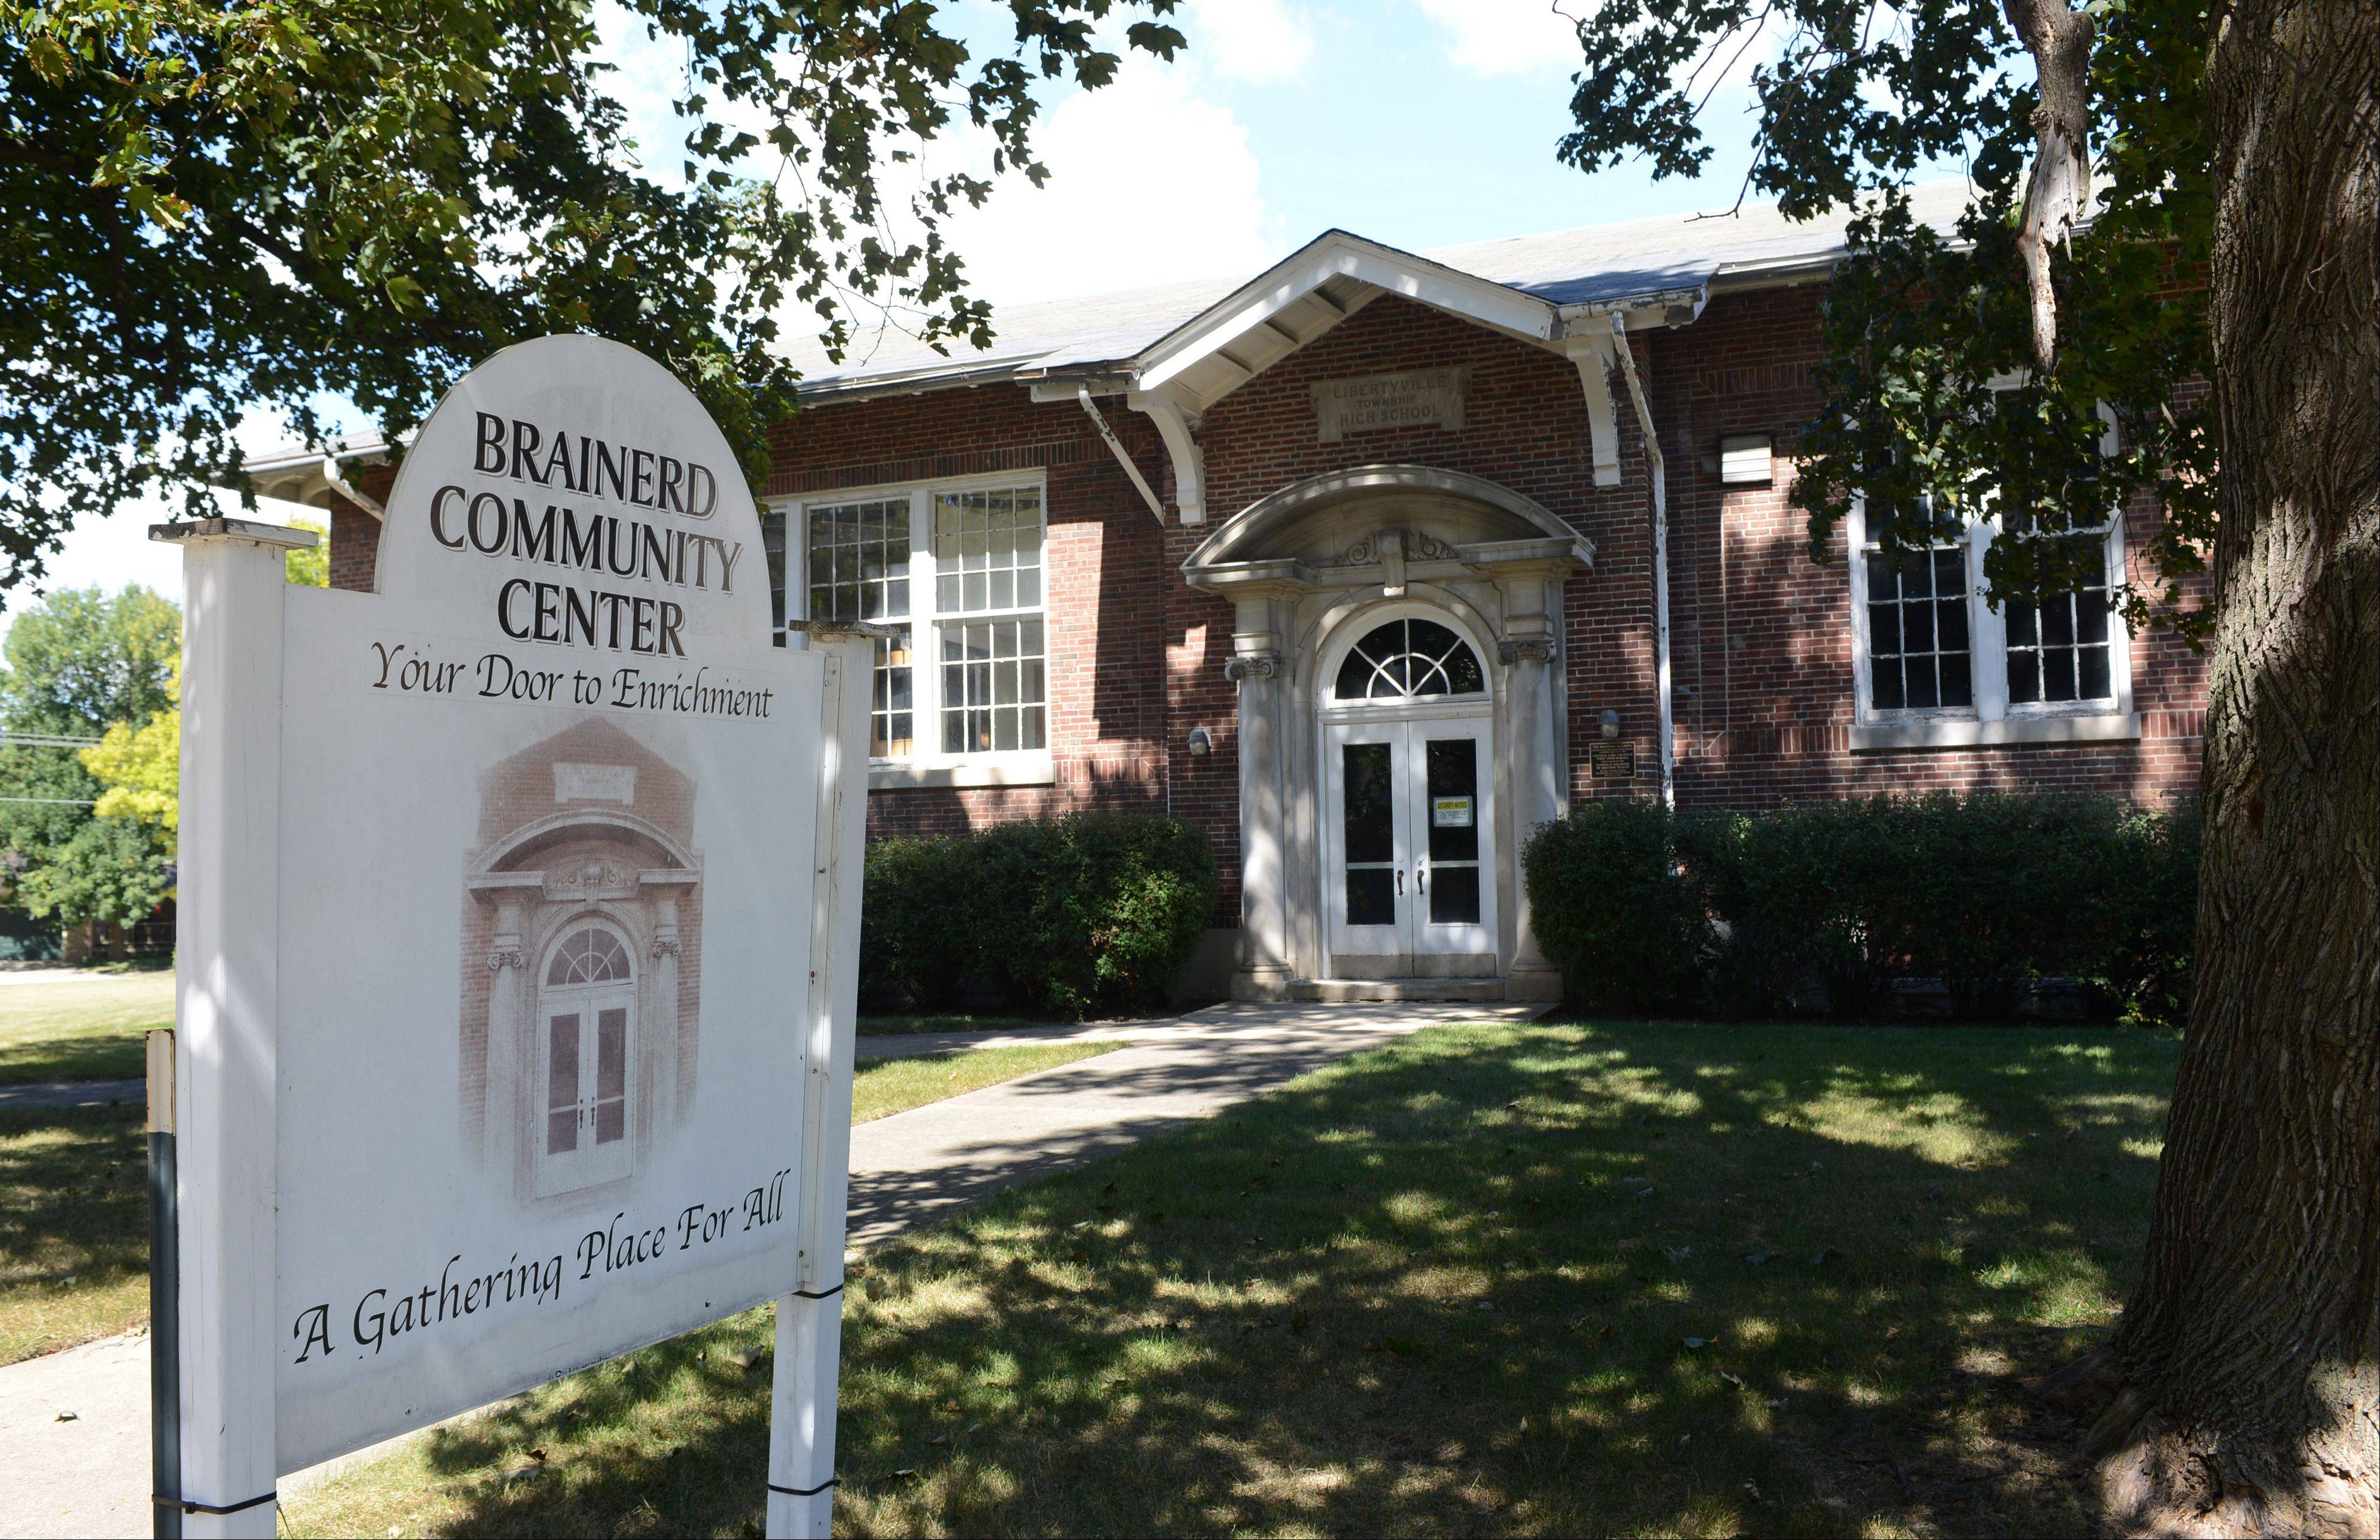 Libertyville voters will be asked in March whether they want to raise property taxes to pay for the conversion of the vacant Brainerd building in Libertyville to a community center.